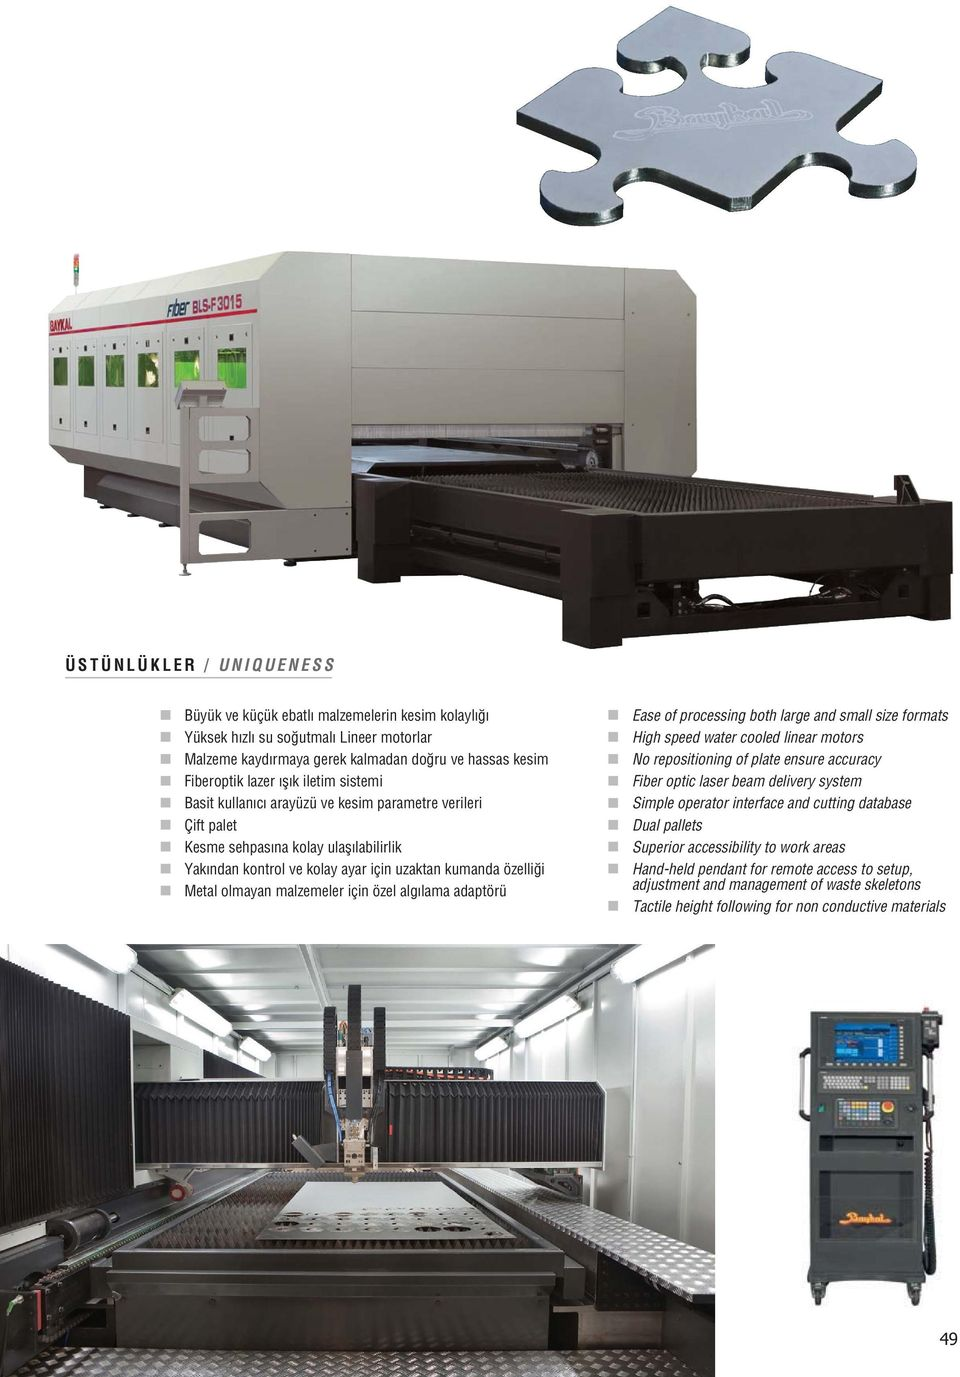 özel alg lama adaptörü Ease of processing both large and small size formats High speed water cooled linear motors No repositioning of plate ensure accuracy Fiber optic laser beam delivery system